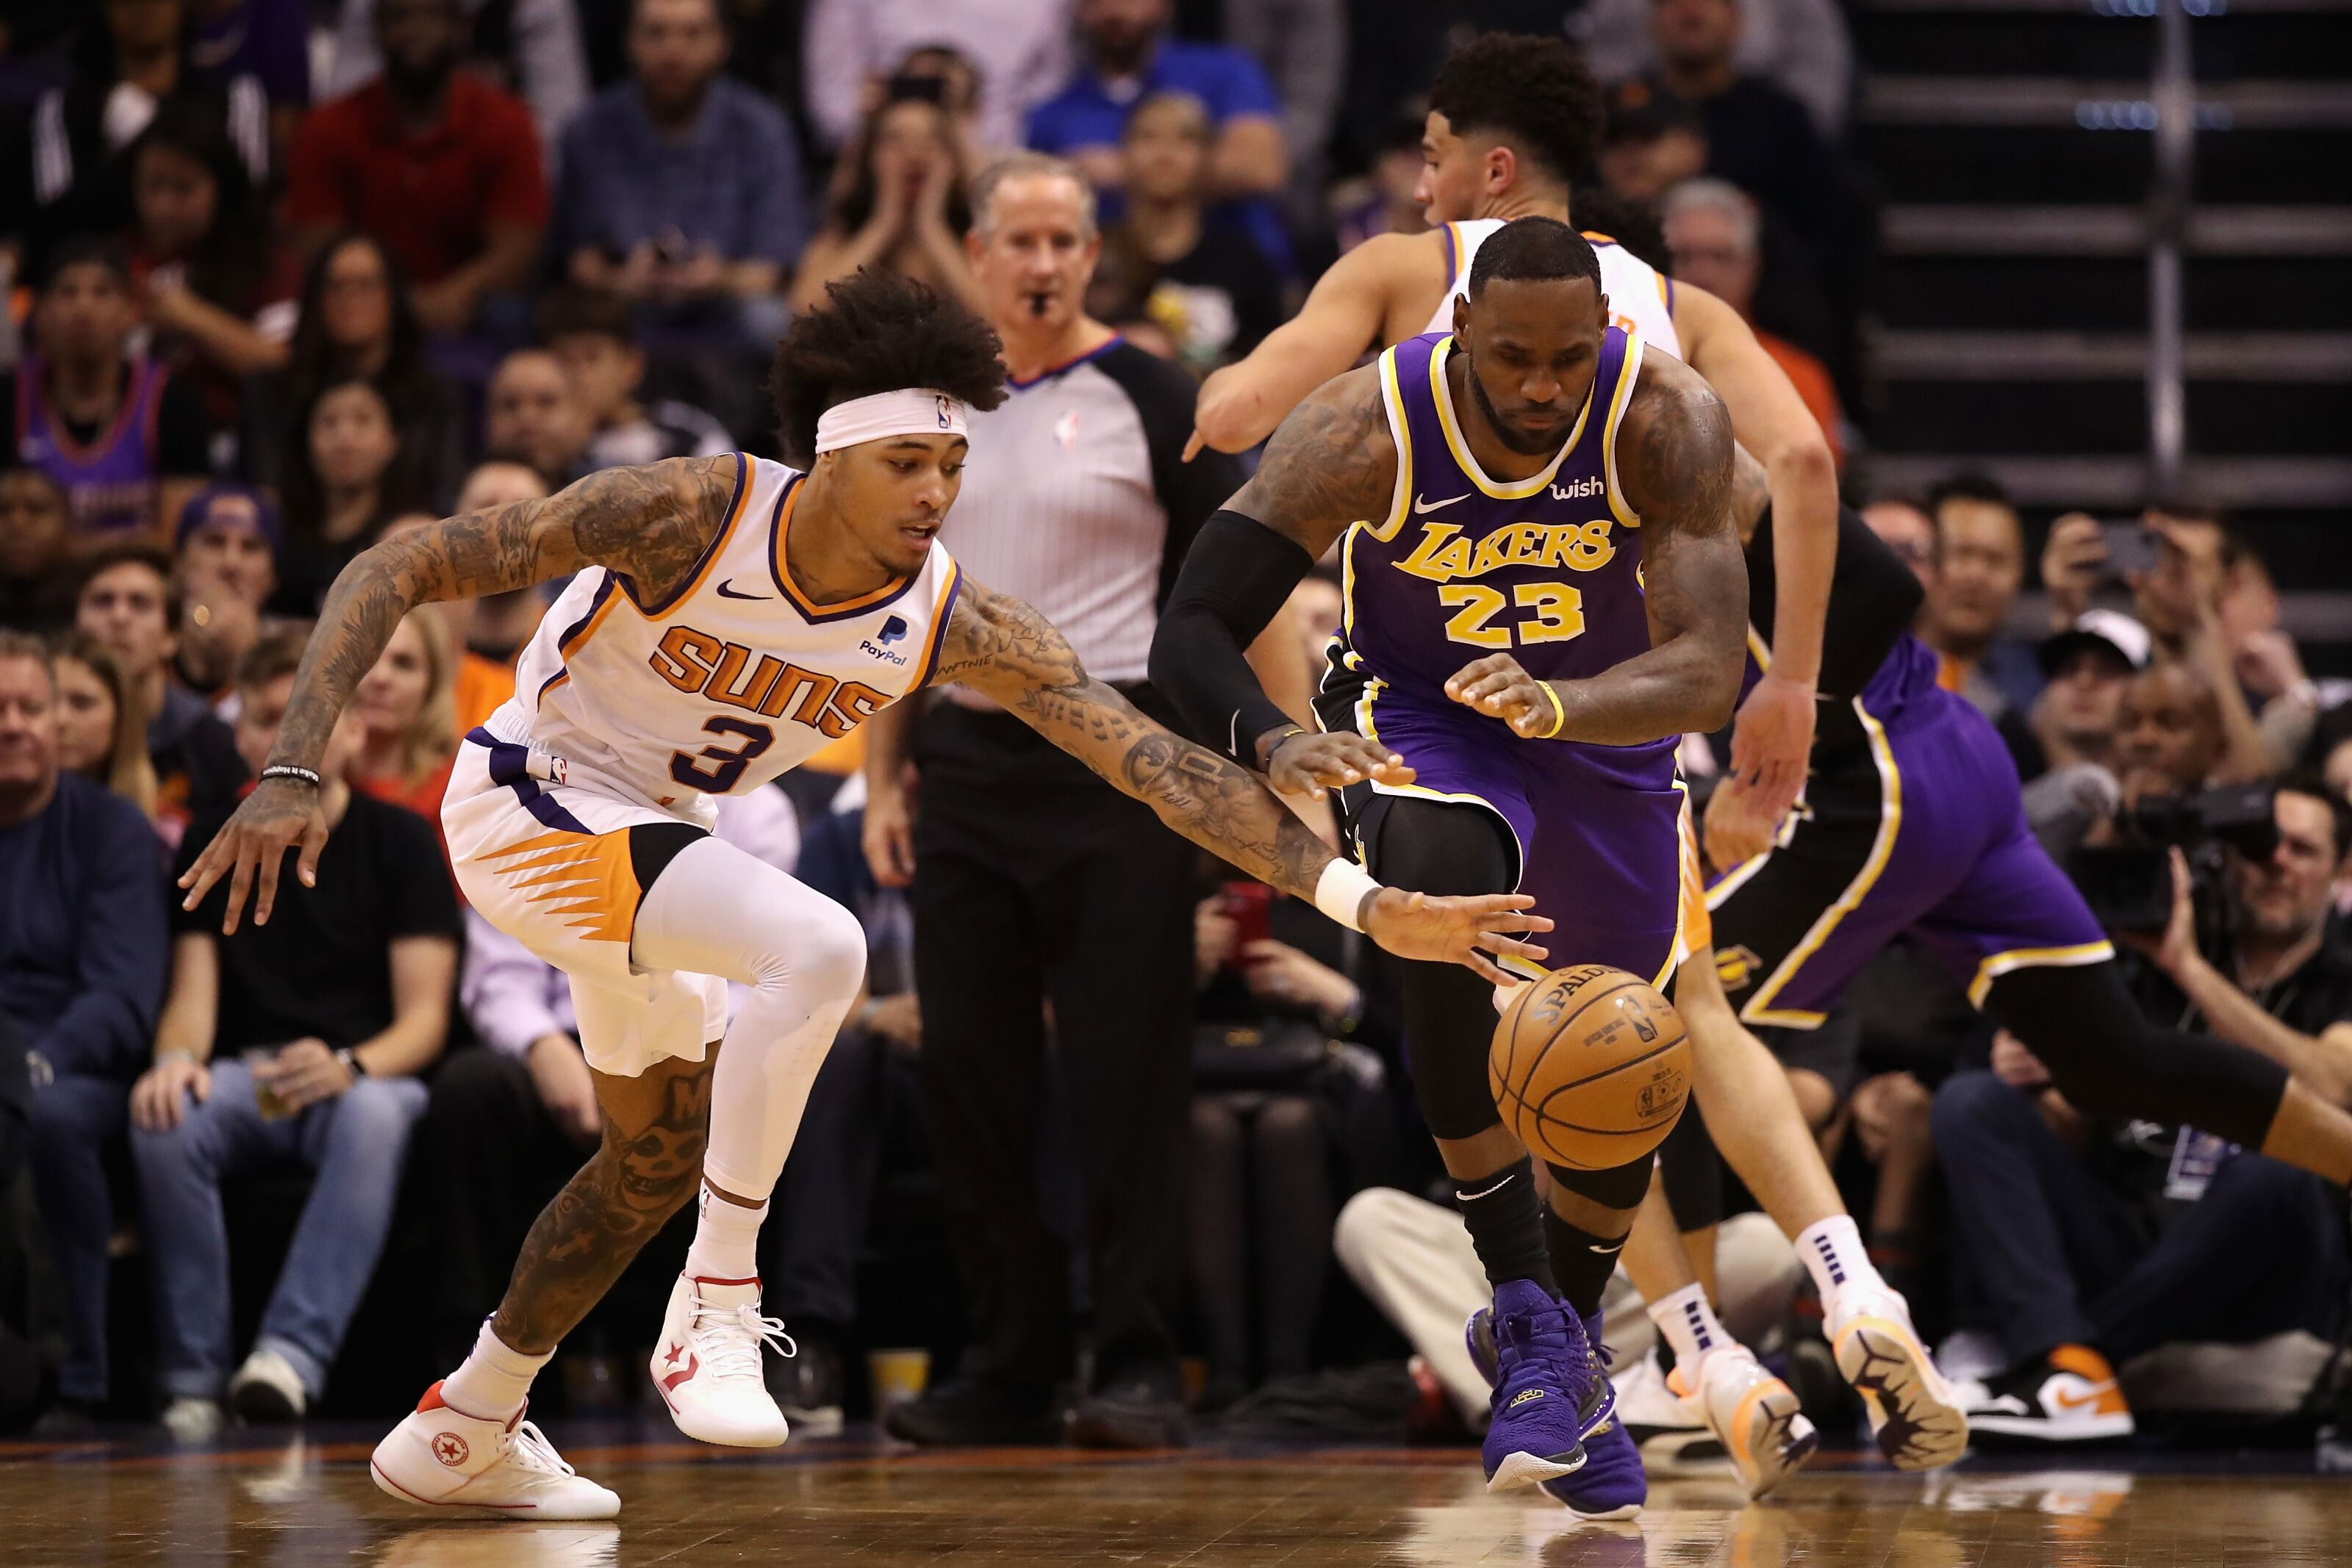 Los Angeles Lakers win against Phoenix Suns to dominate West.